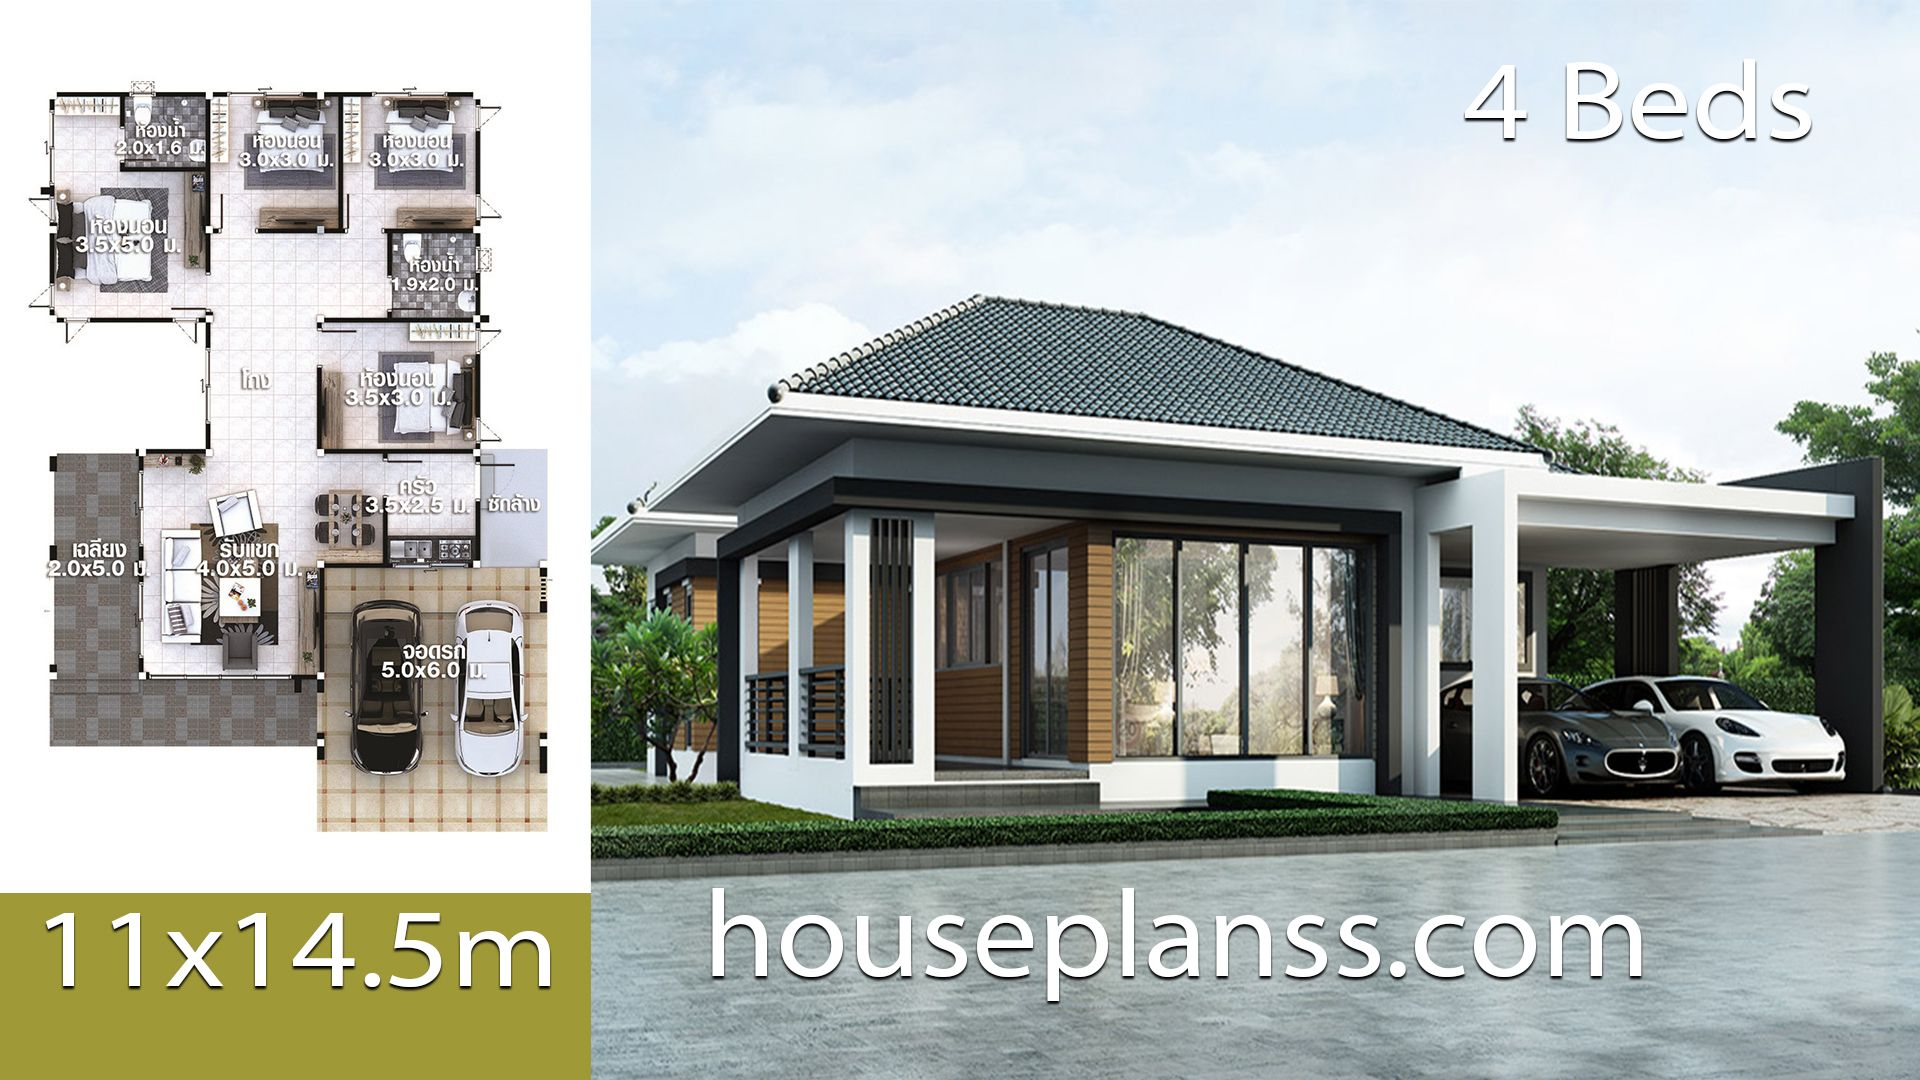 House Plans Idea 11x14 5 With 4 Bedrooms House Plans 3d In 2020 Home Design Plans Small Modern House Plans House Plans